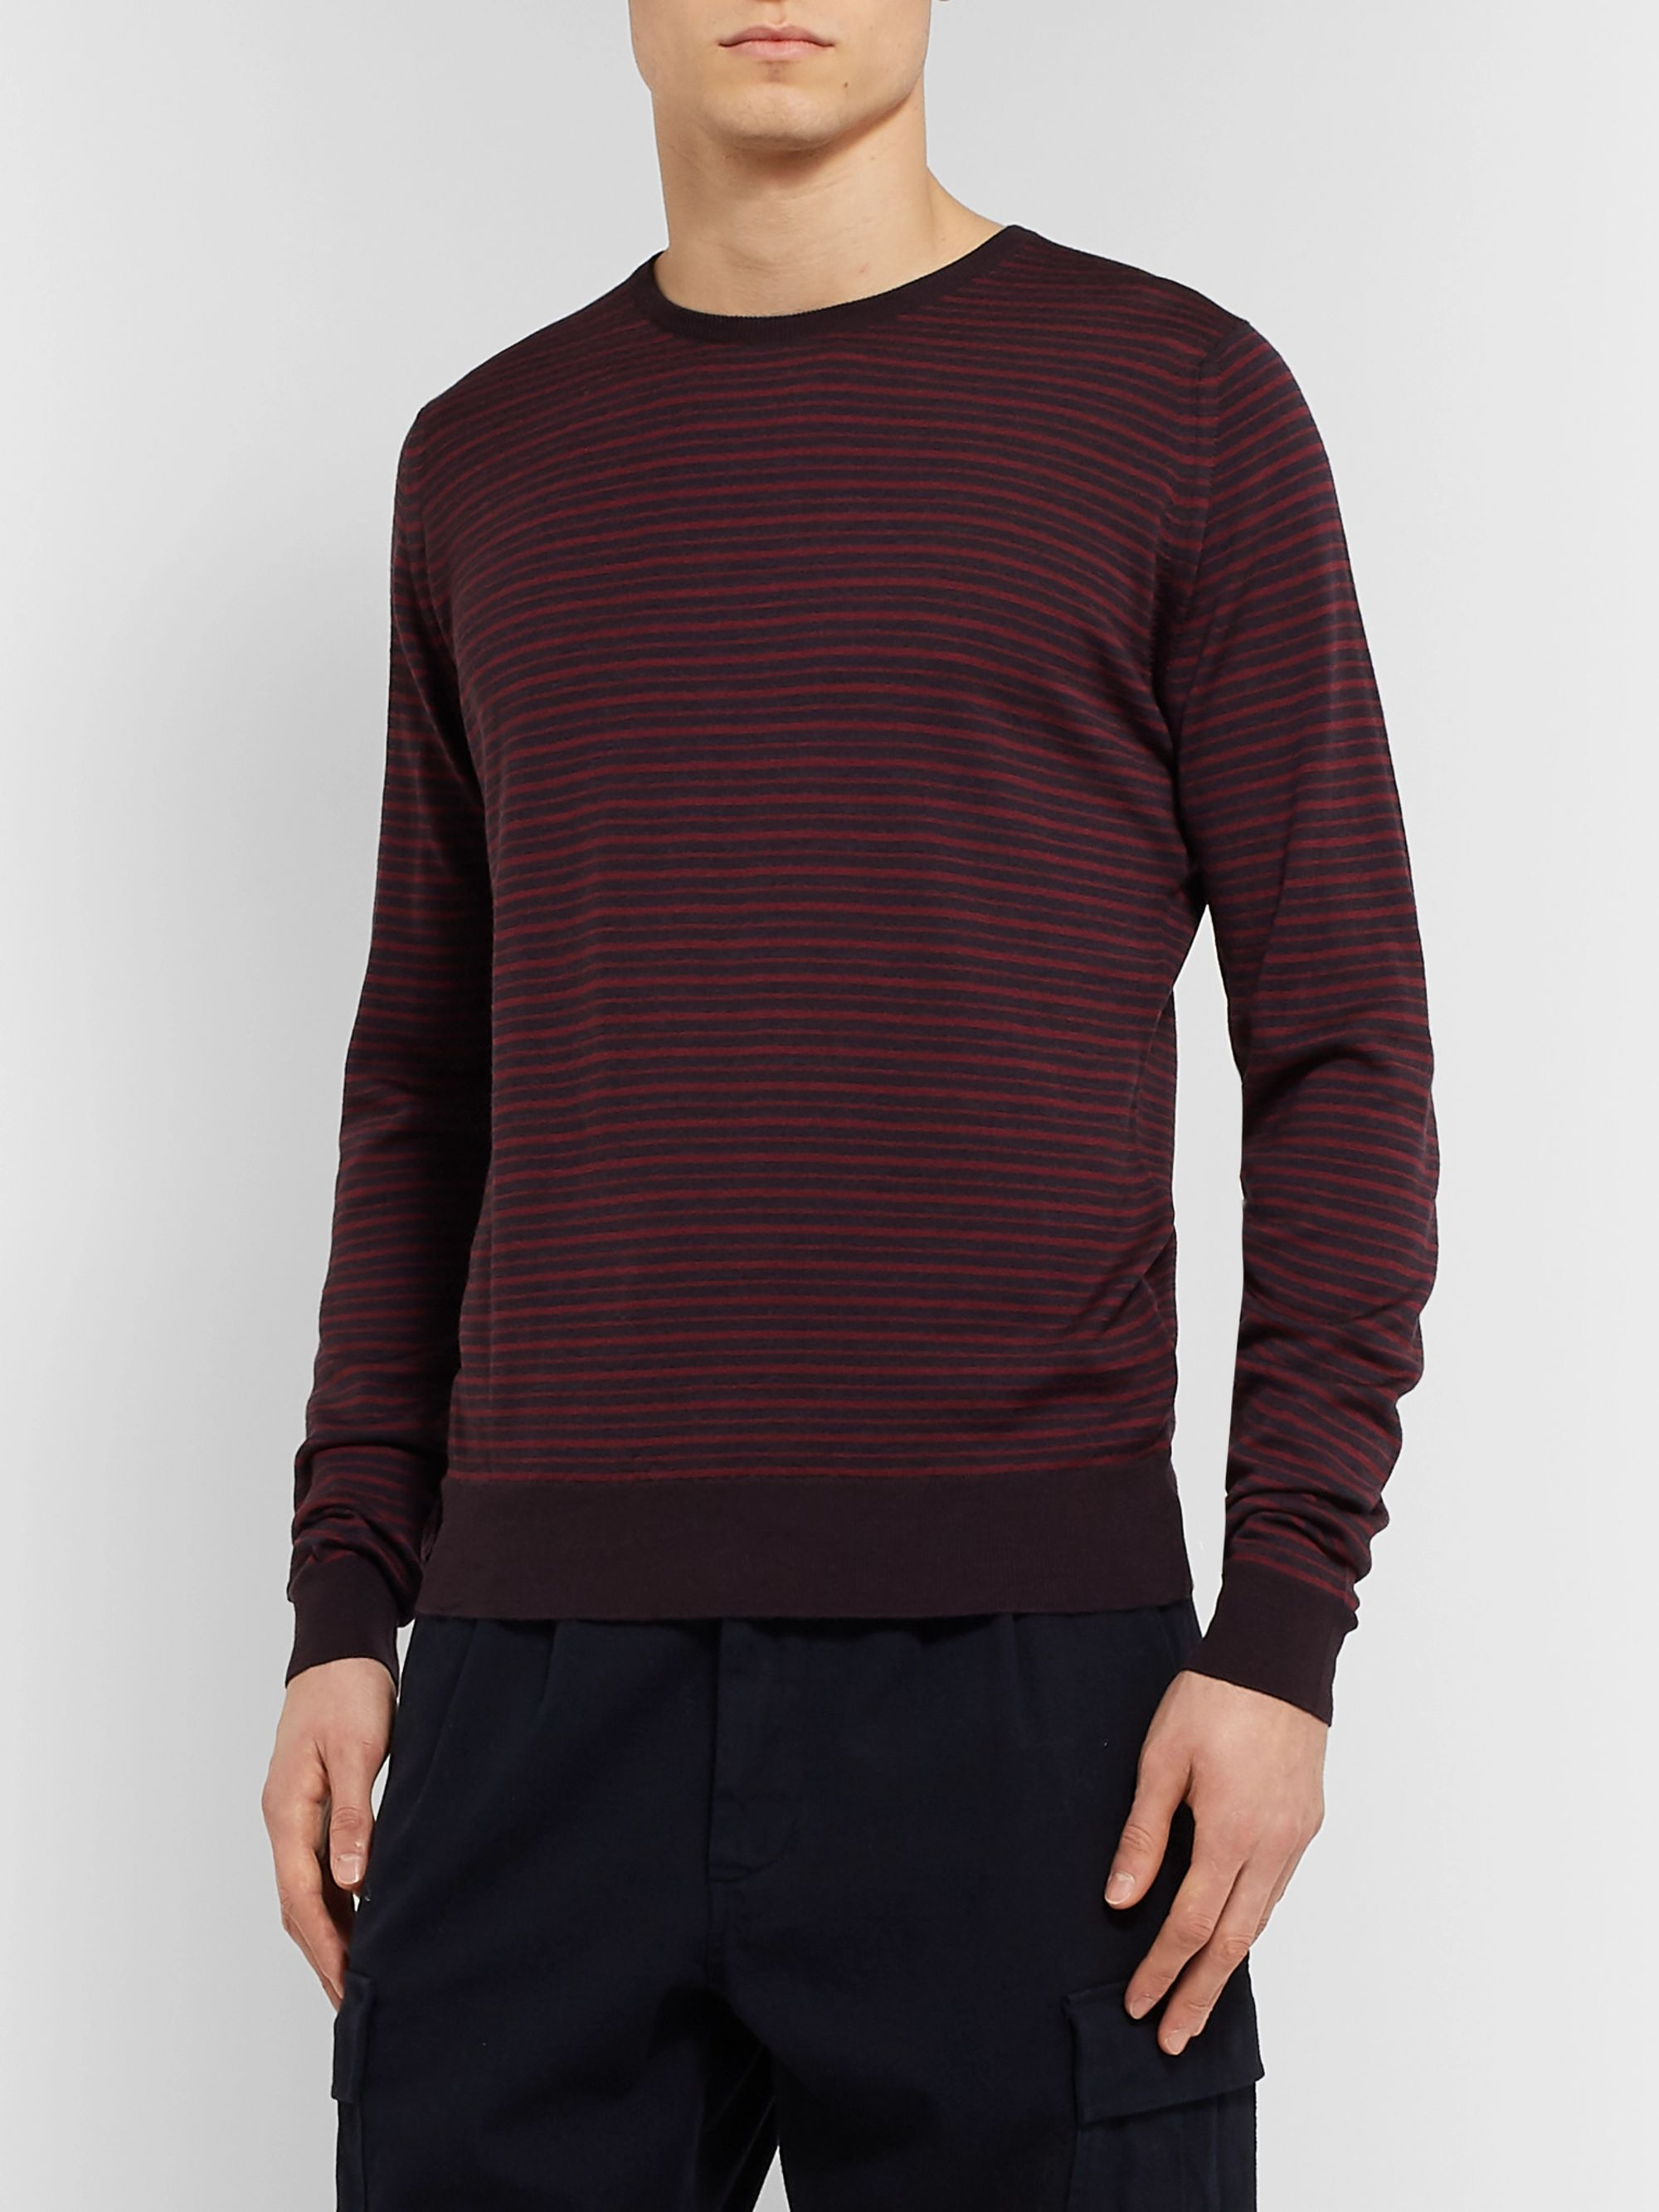 John Smedley Striped Wool Sweater